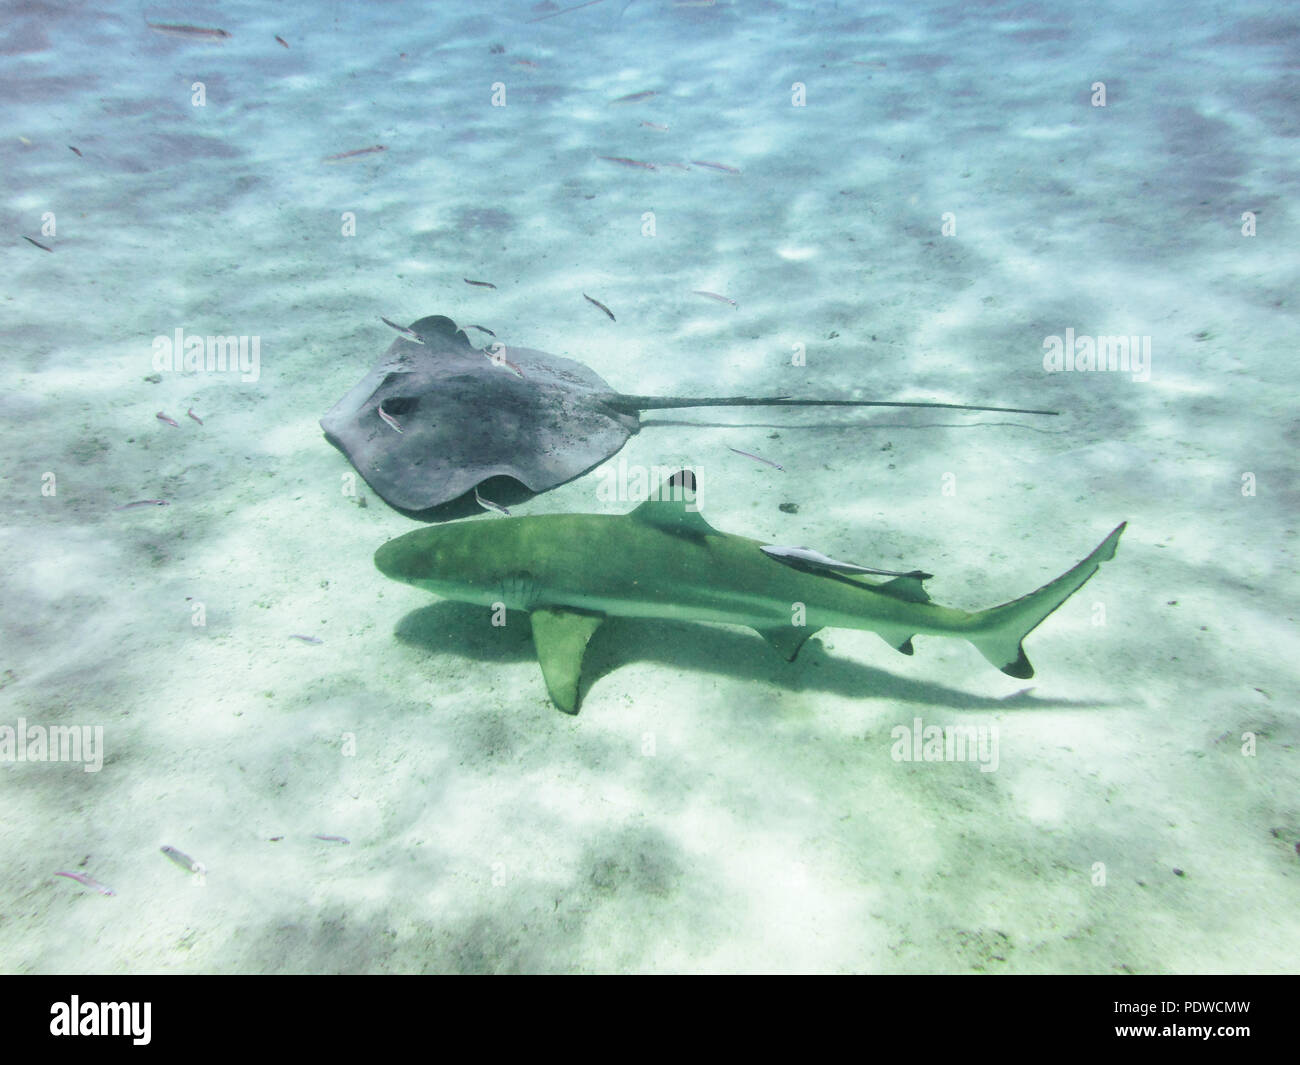 Scat and shark swim together. Underwater shooting in the tropics. Close-up - Stock Image